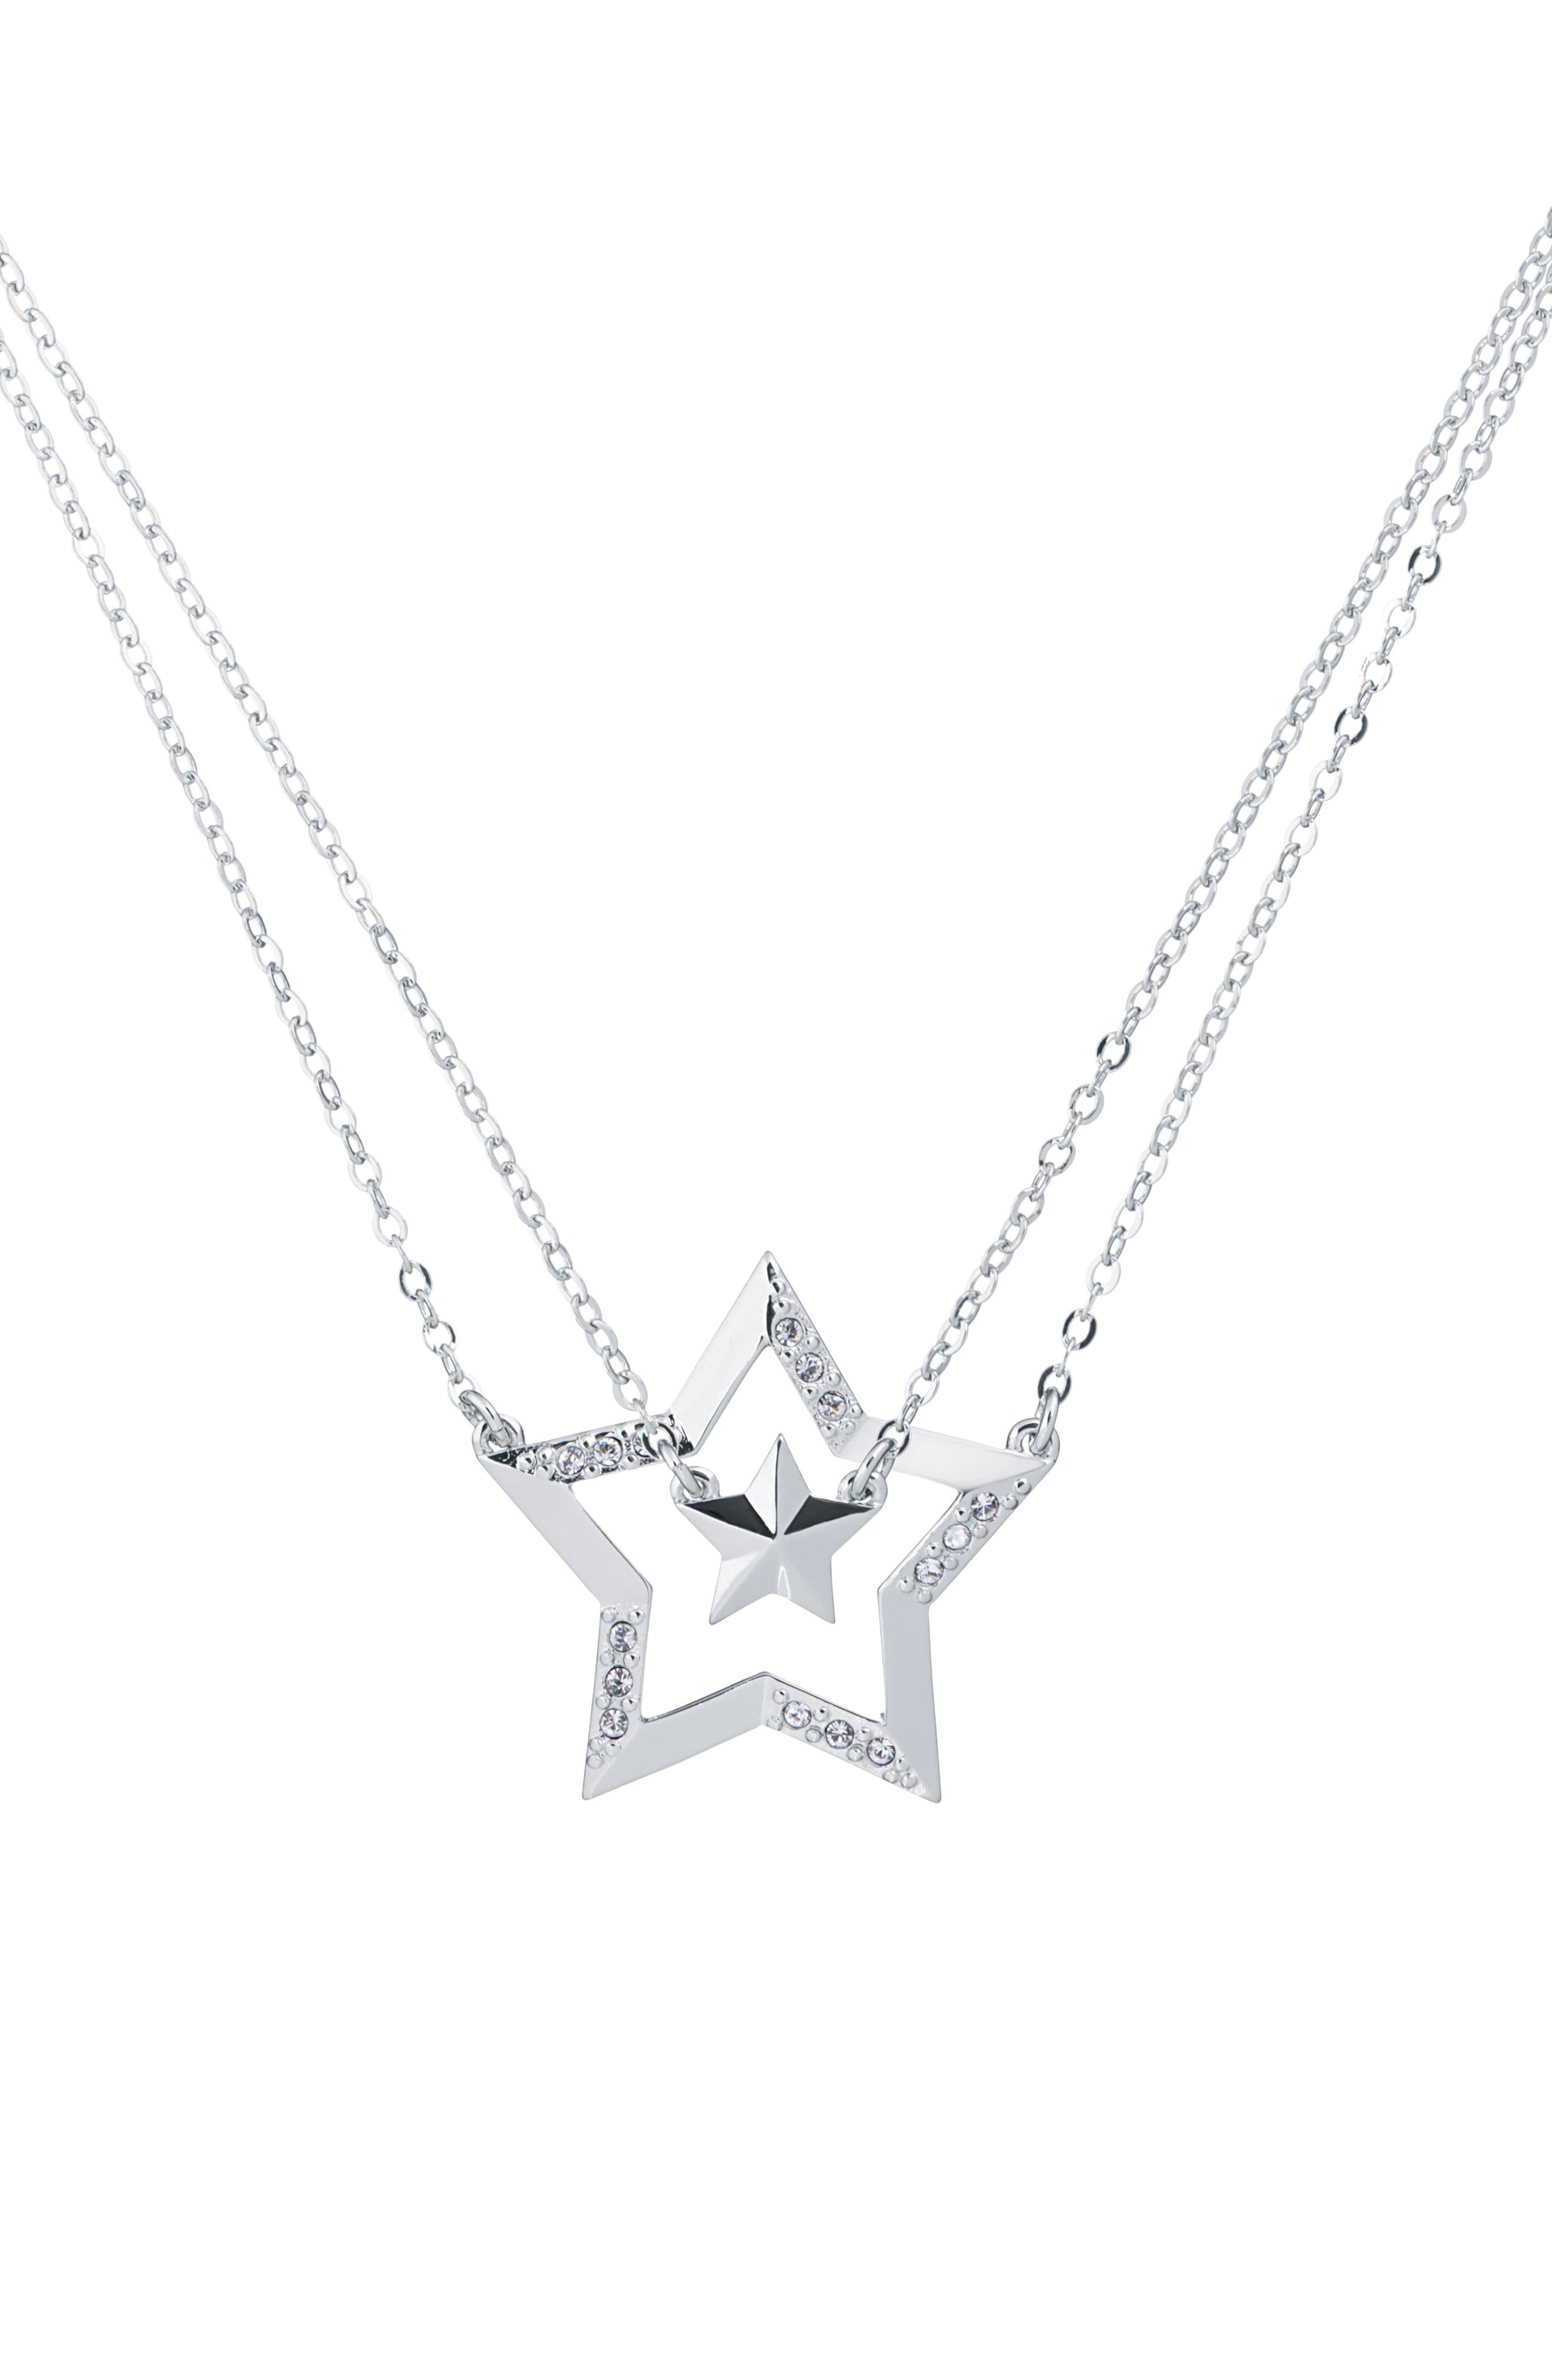 Idolina Interstella Double Pendant Set of 2 Layered Necklaces, Main, color, SILVER/ CRYSTAL